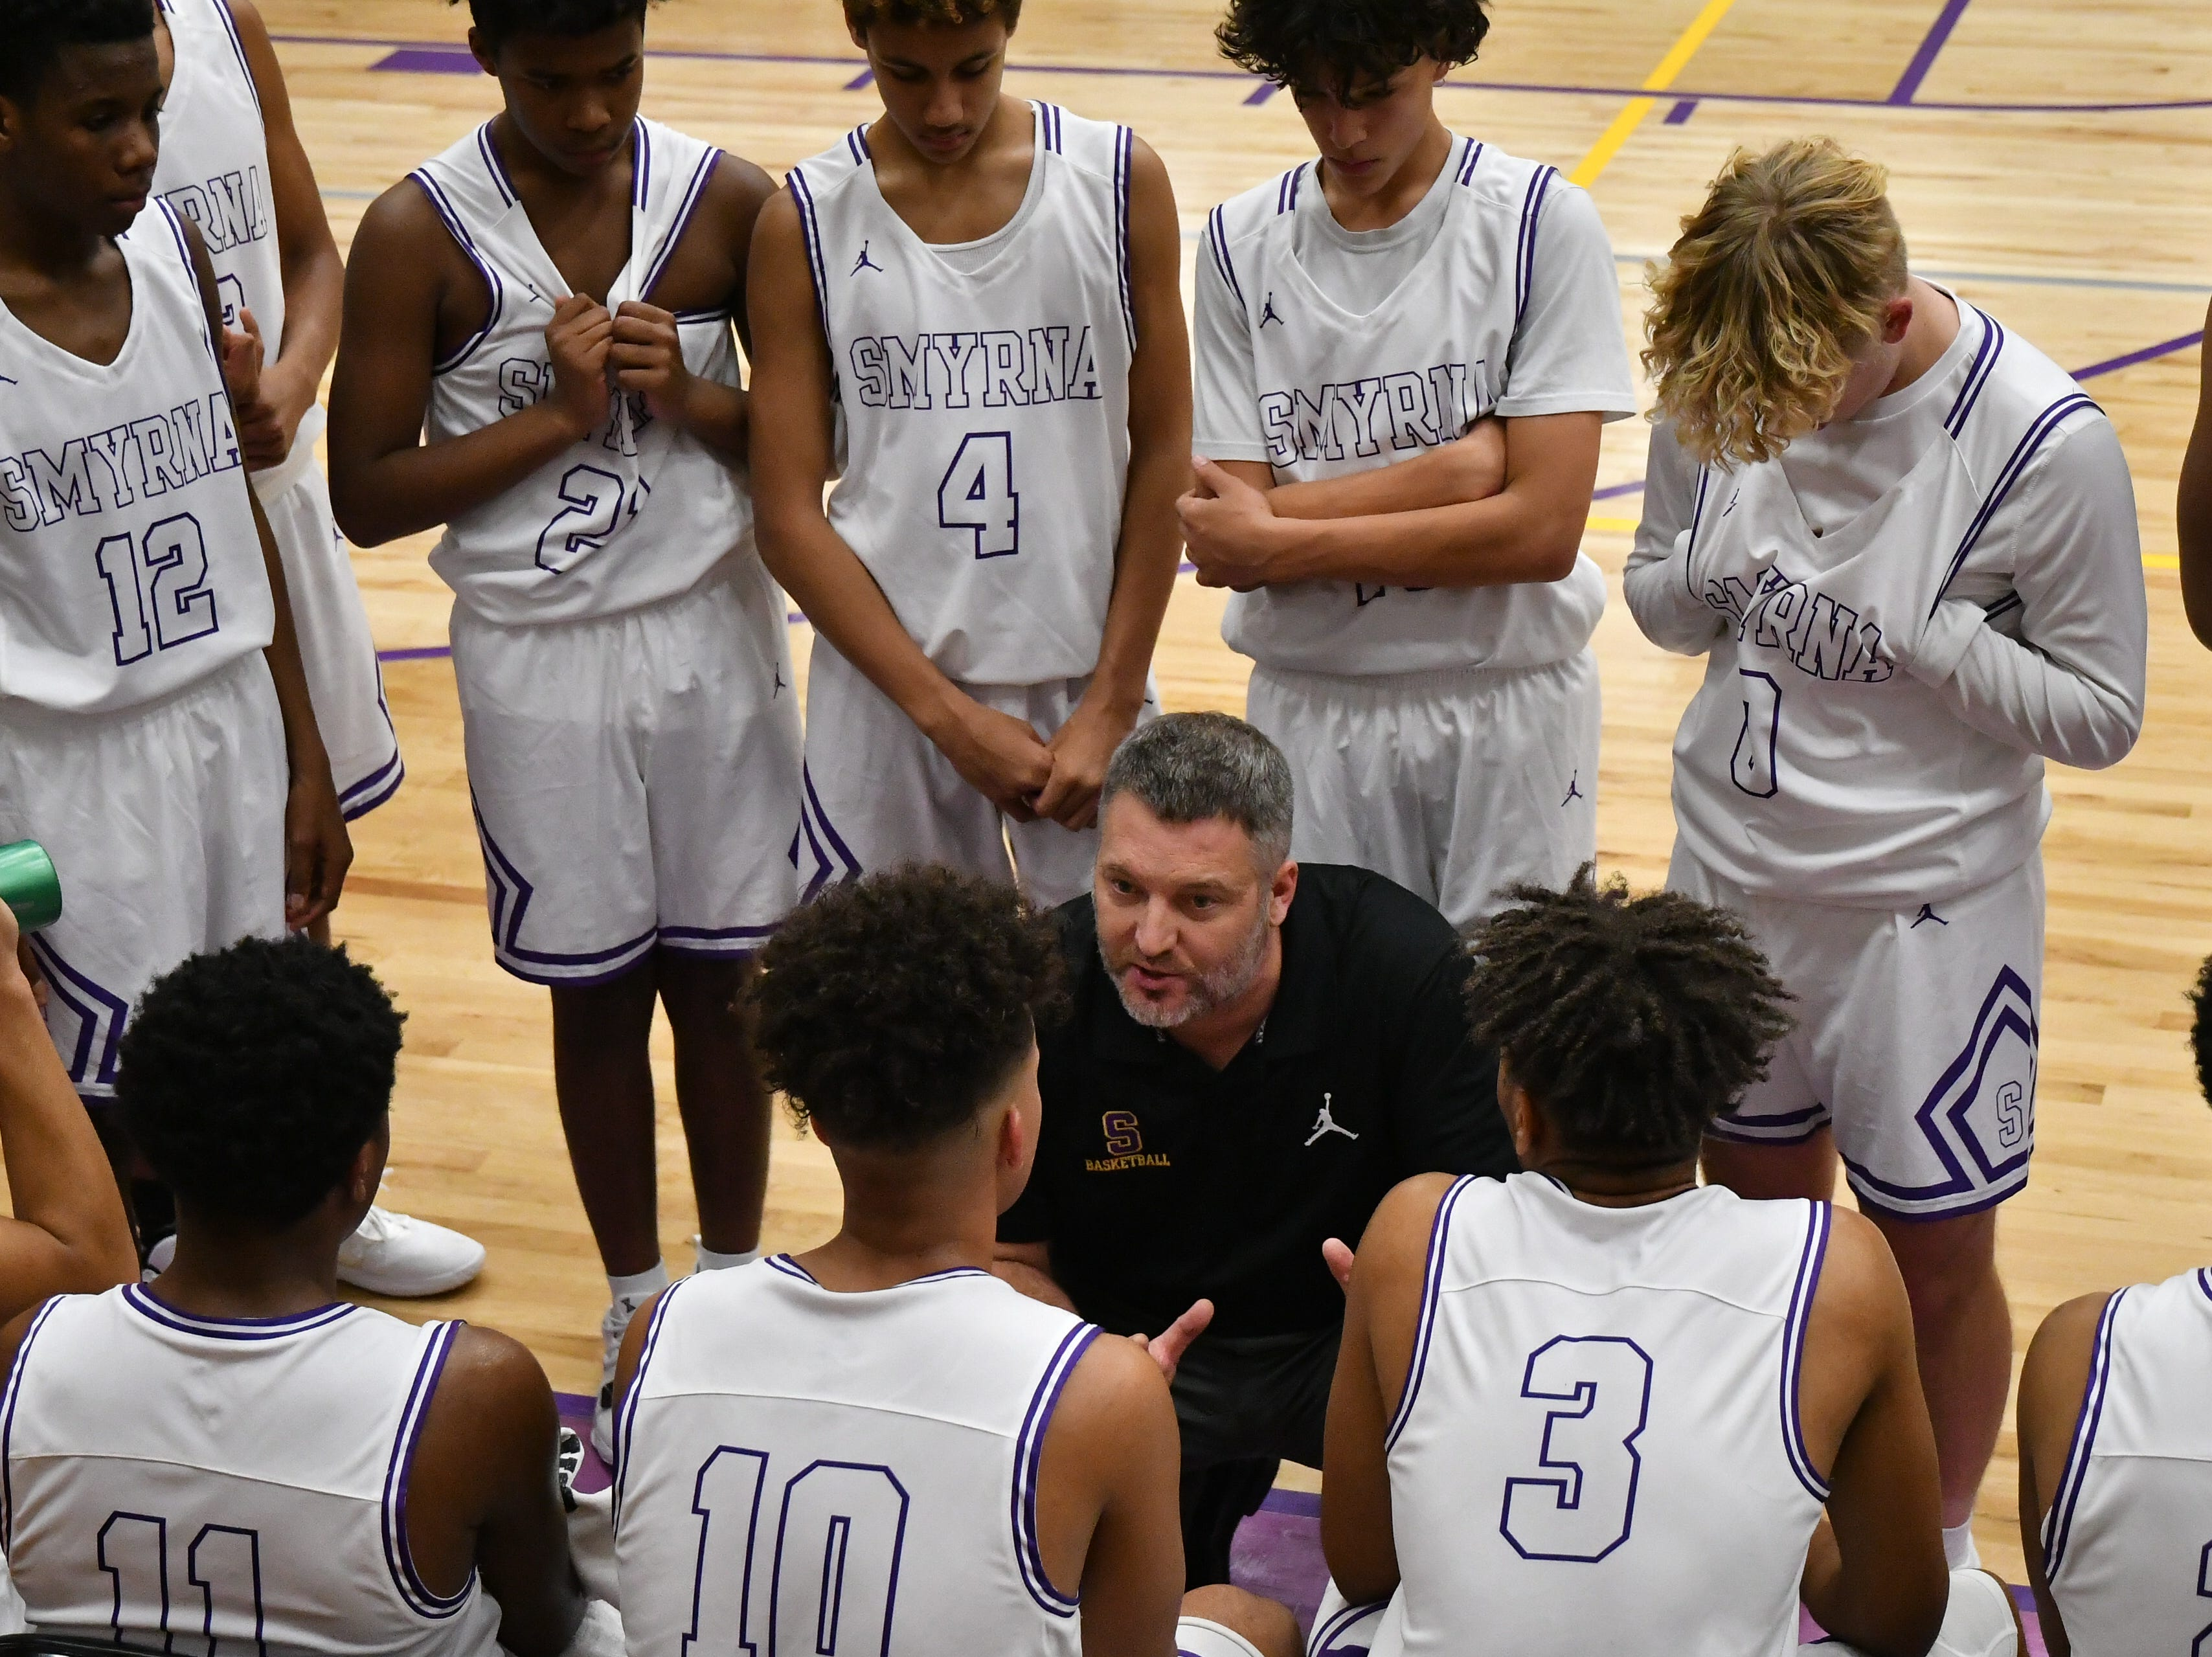 Smyrna coach Mike Wright talks to his squad during Tuesday's game against Stewarts Creek.